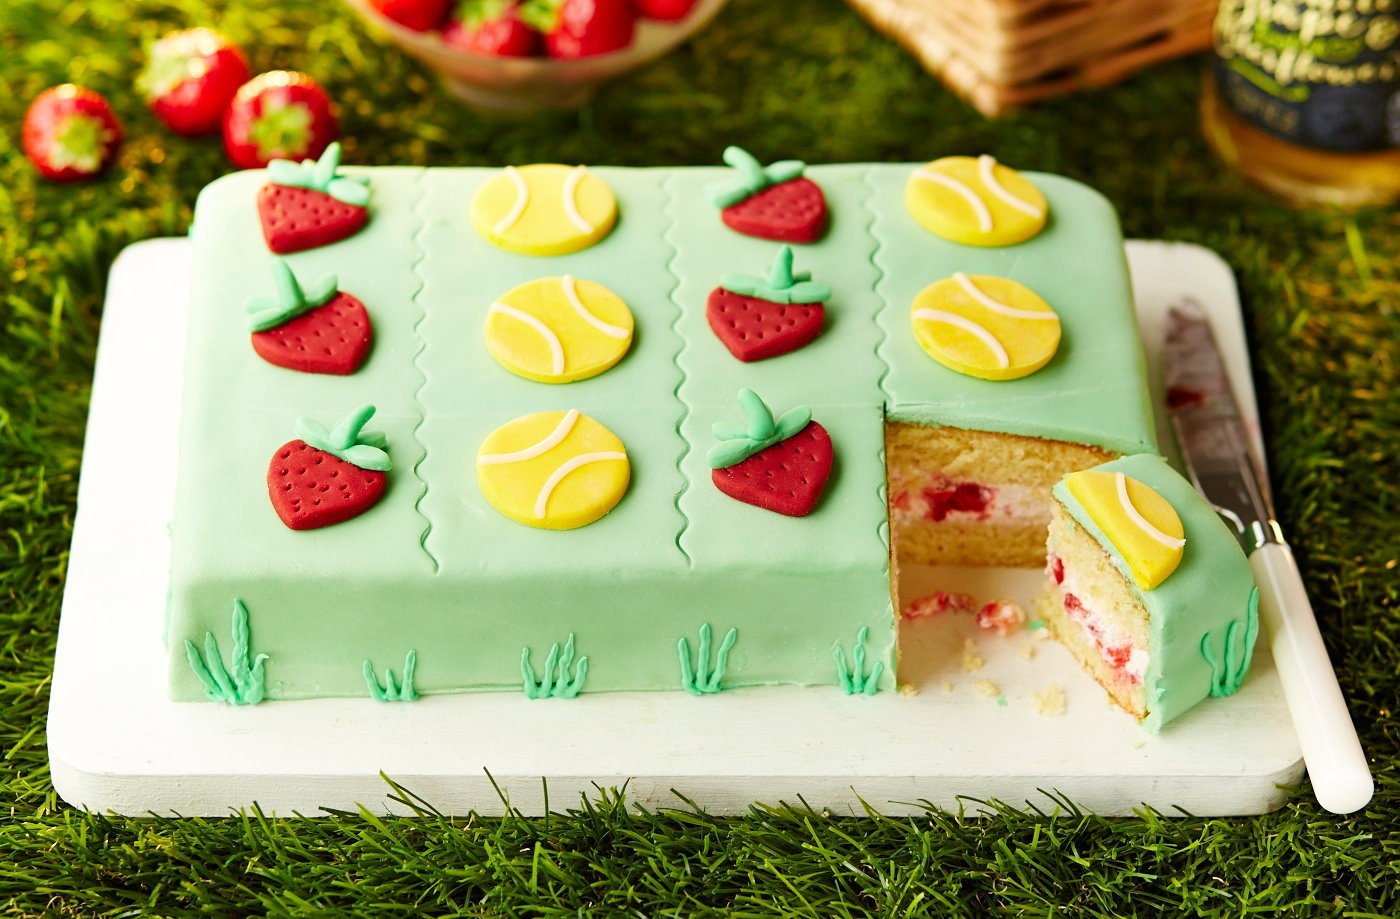 Wimbledon strawberry cake recipe